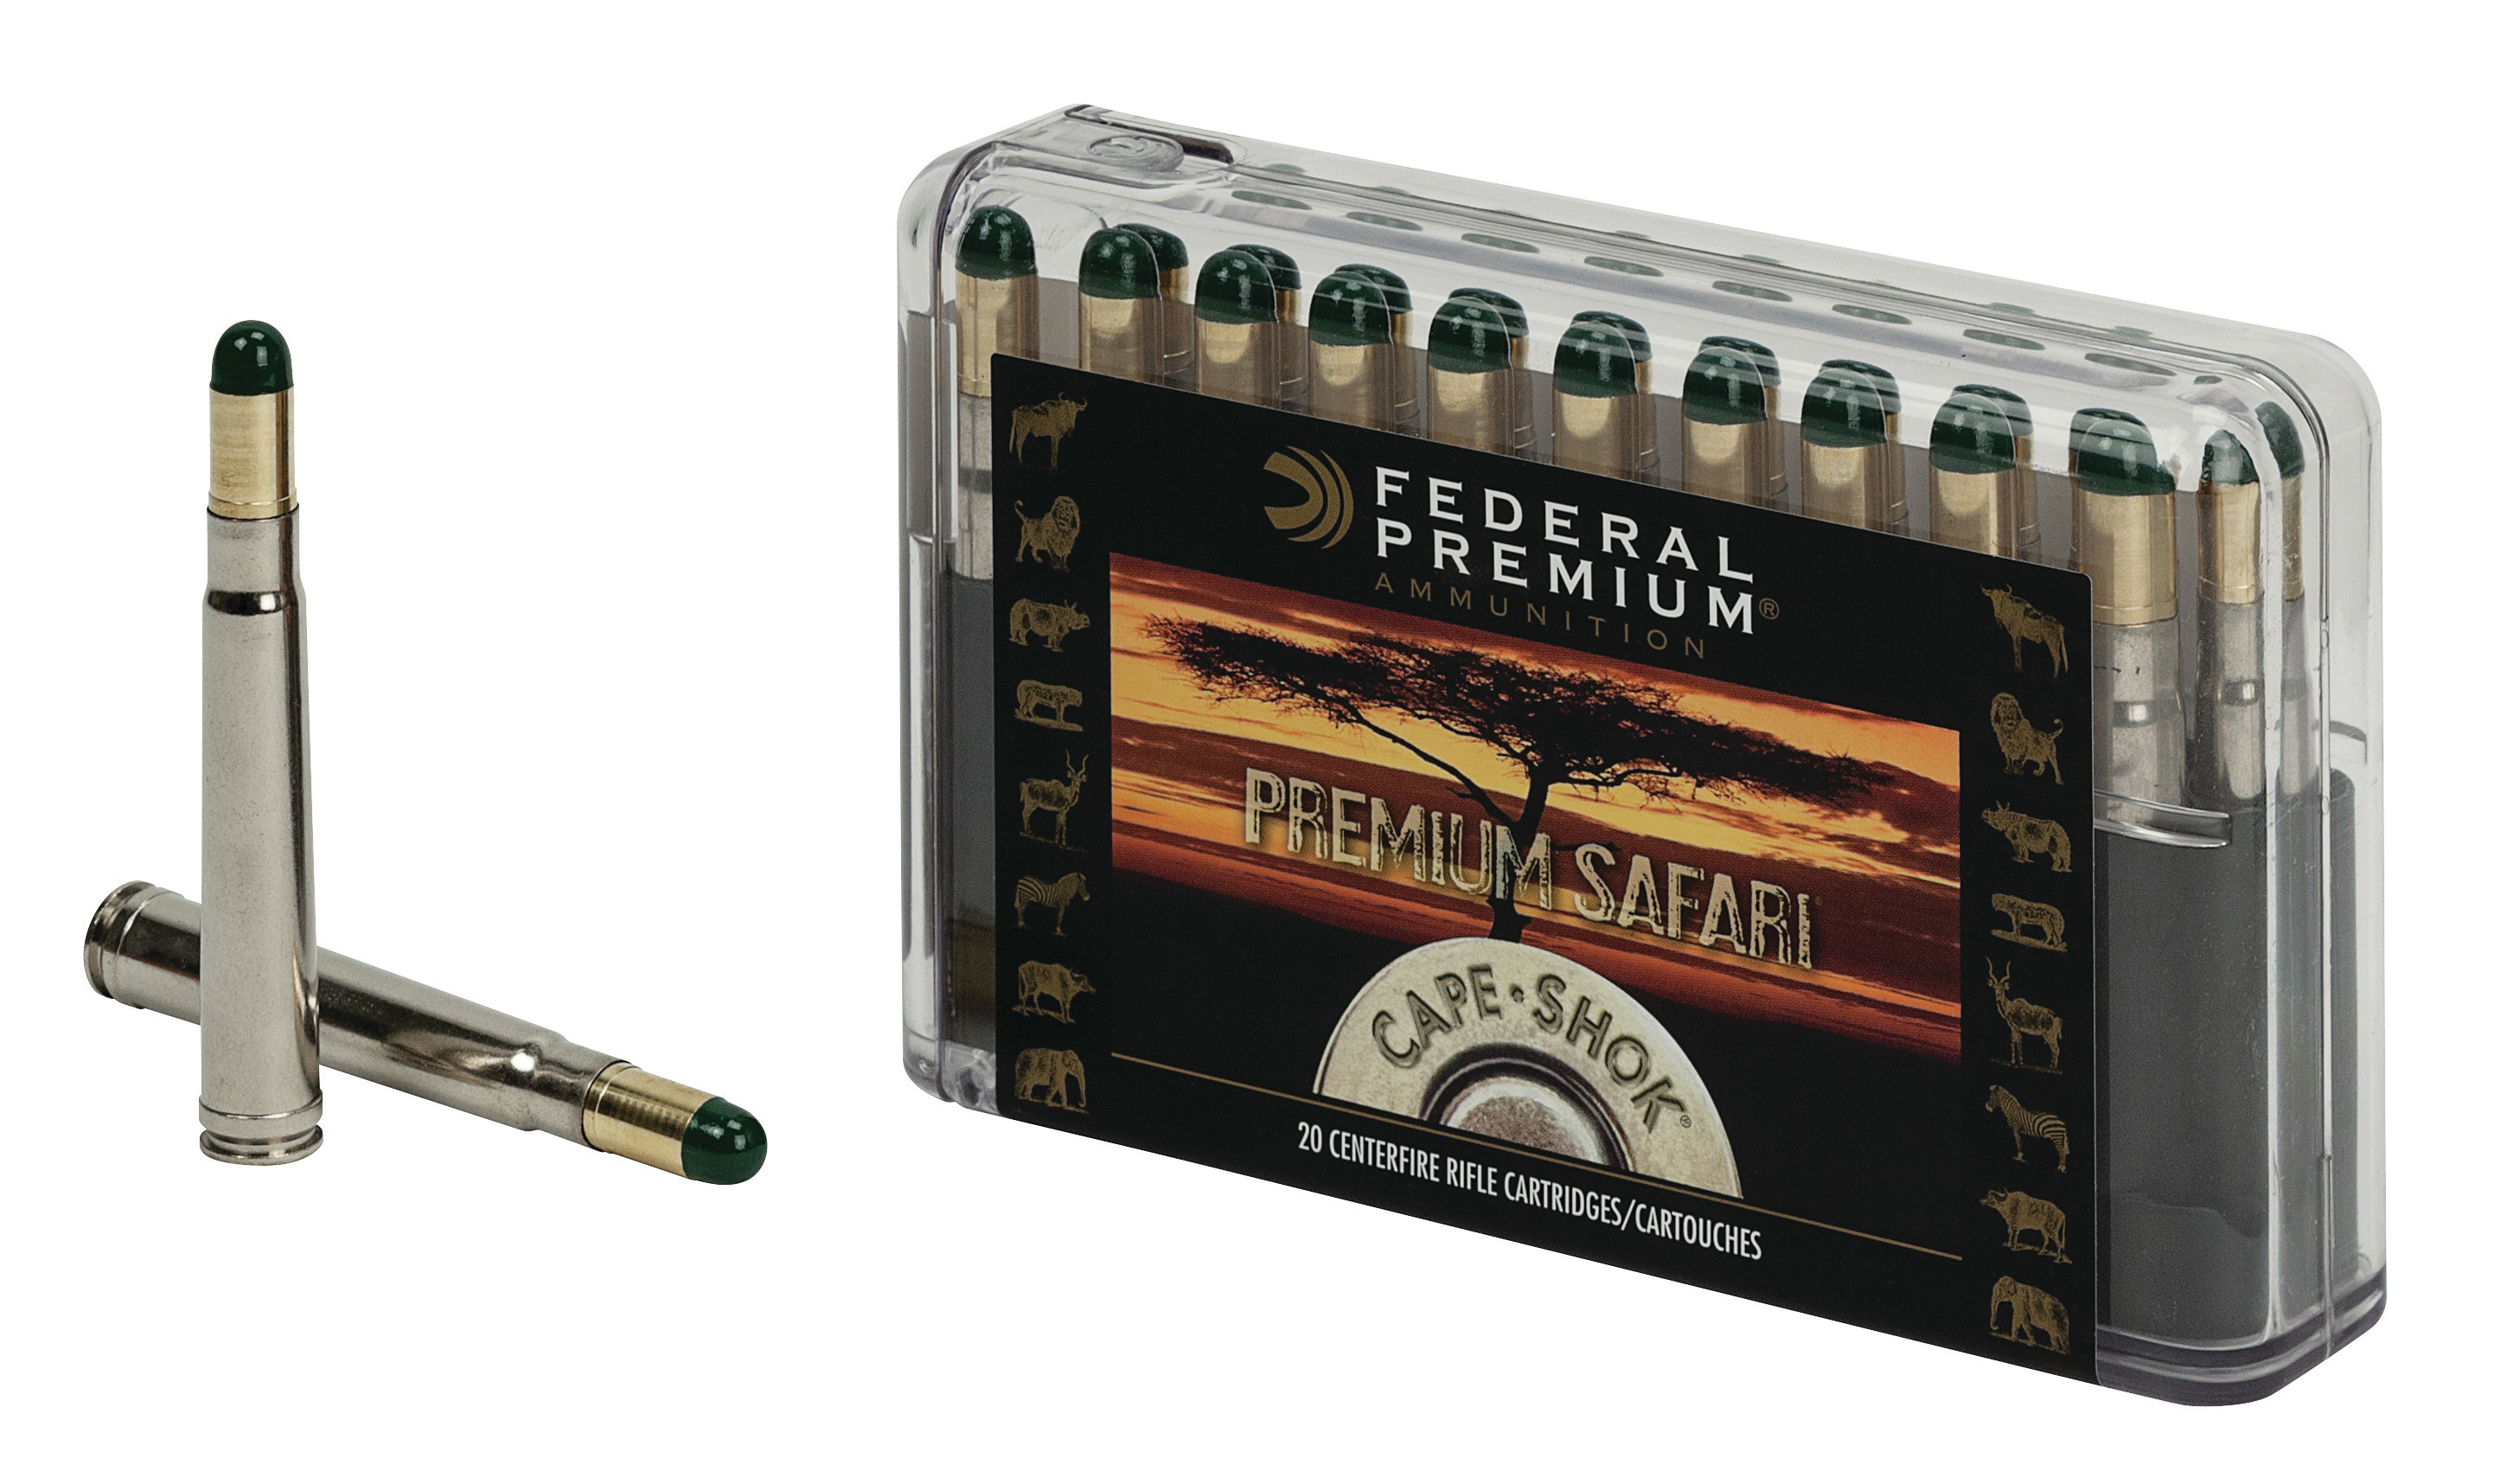 Federal Premium Cape-Shok Ammunition 458 Lott 500GR Woodleigh Hydro Solid Round Nose Per 20